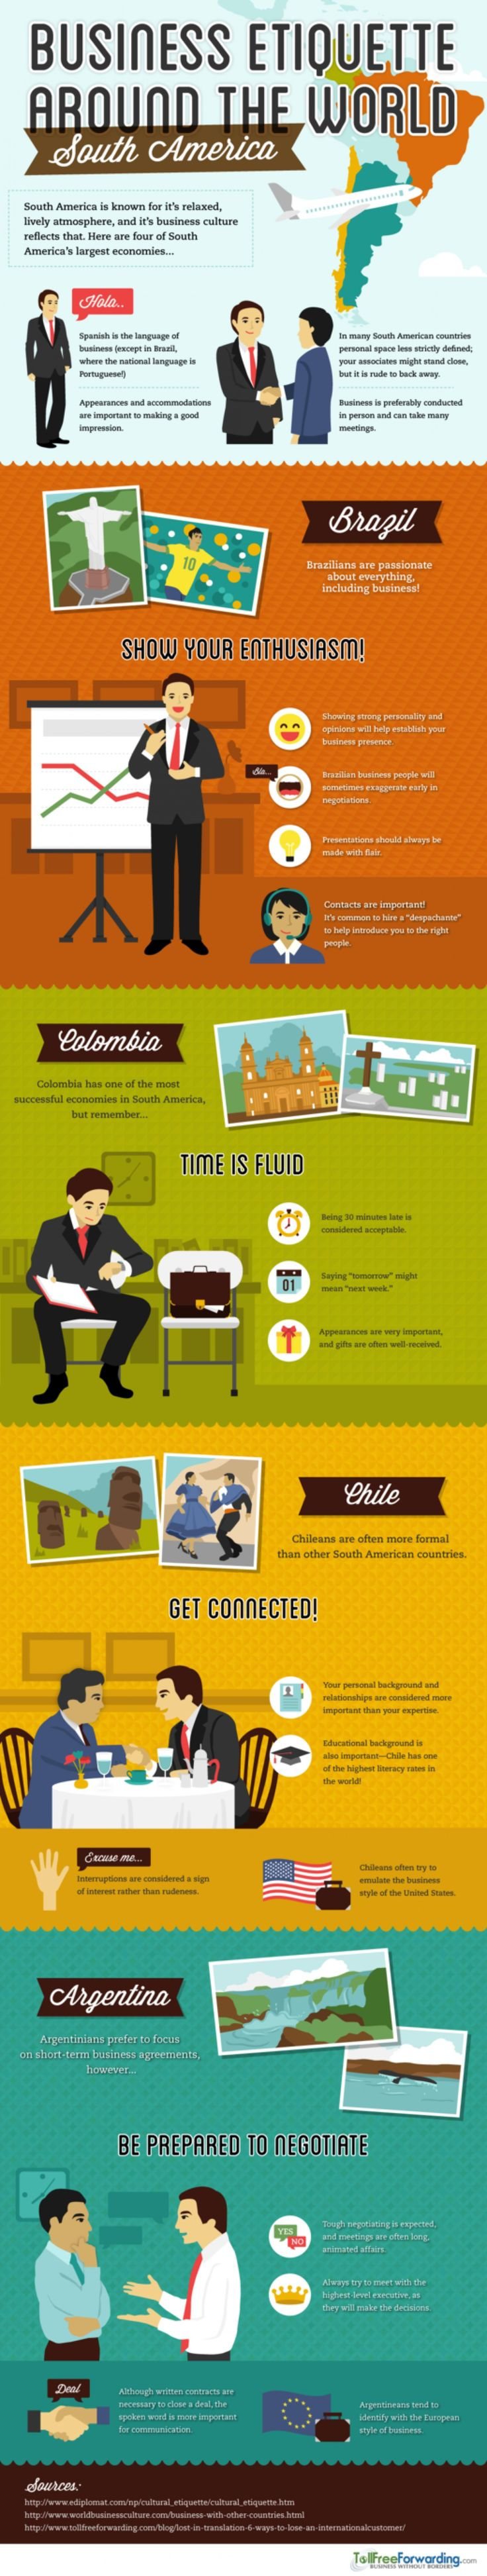 12 best business etiquette images on pinterest career business etiquette south america with optimal health often comes clarity of thought click now fandeluxe Choice Image